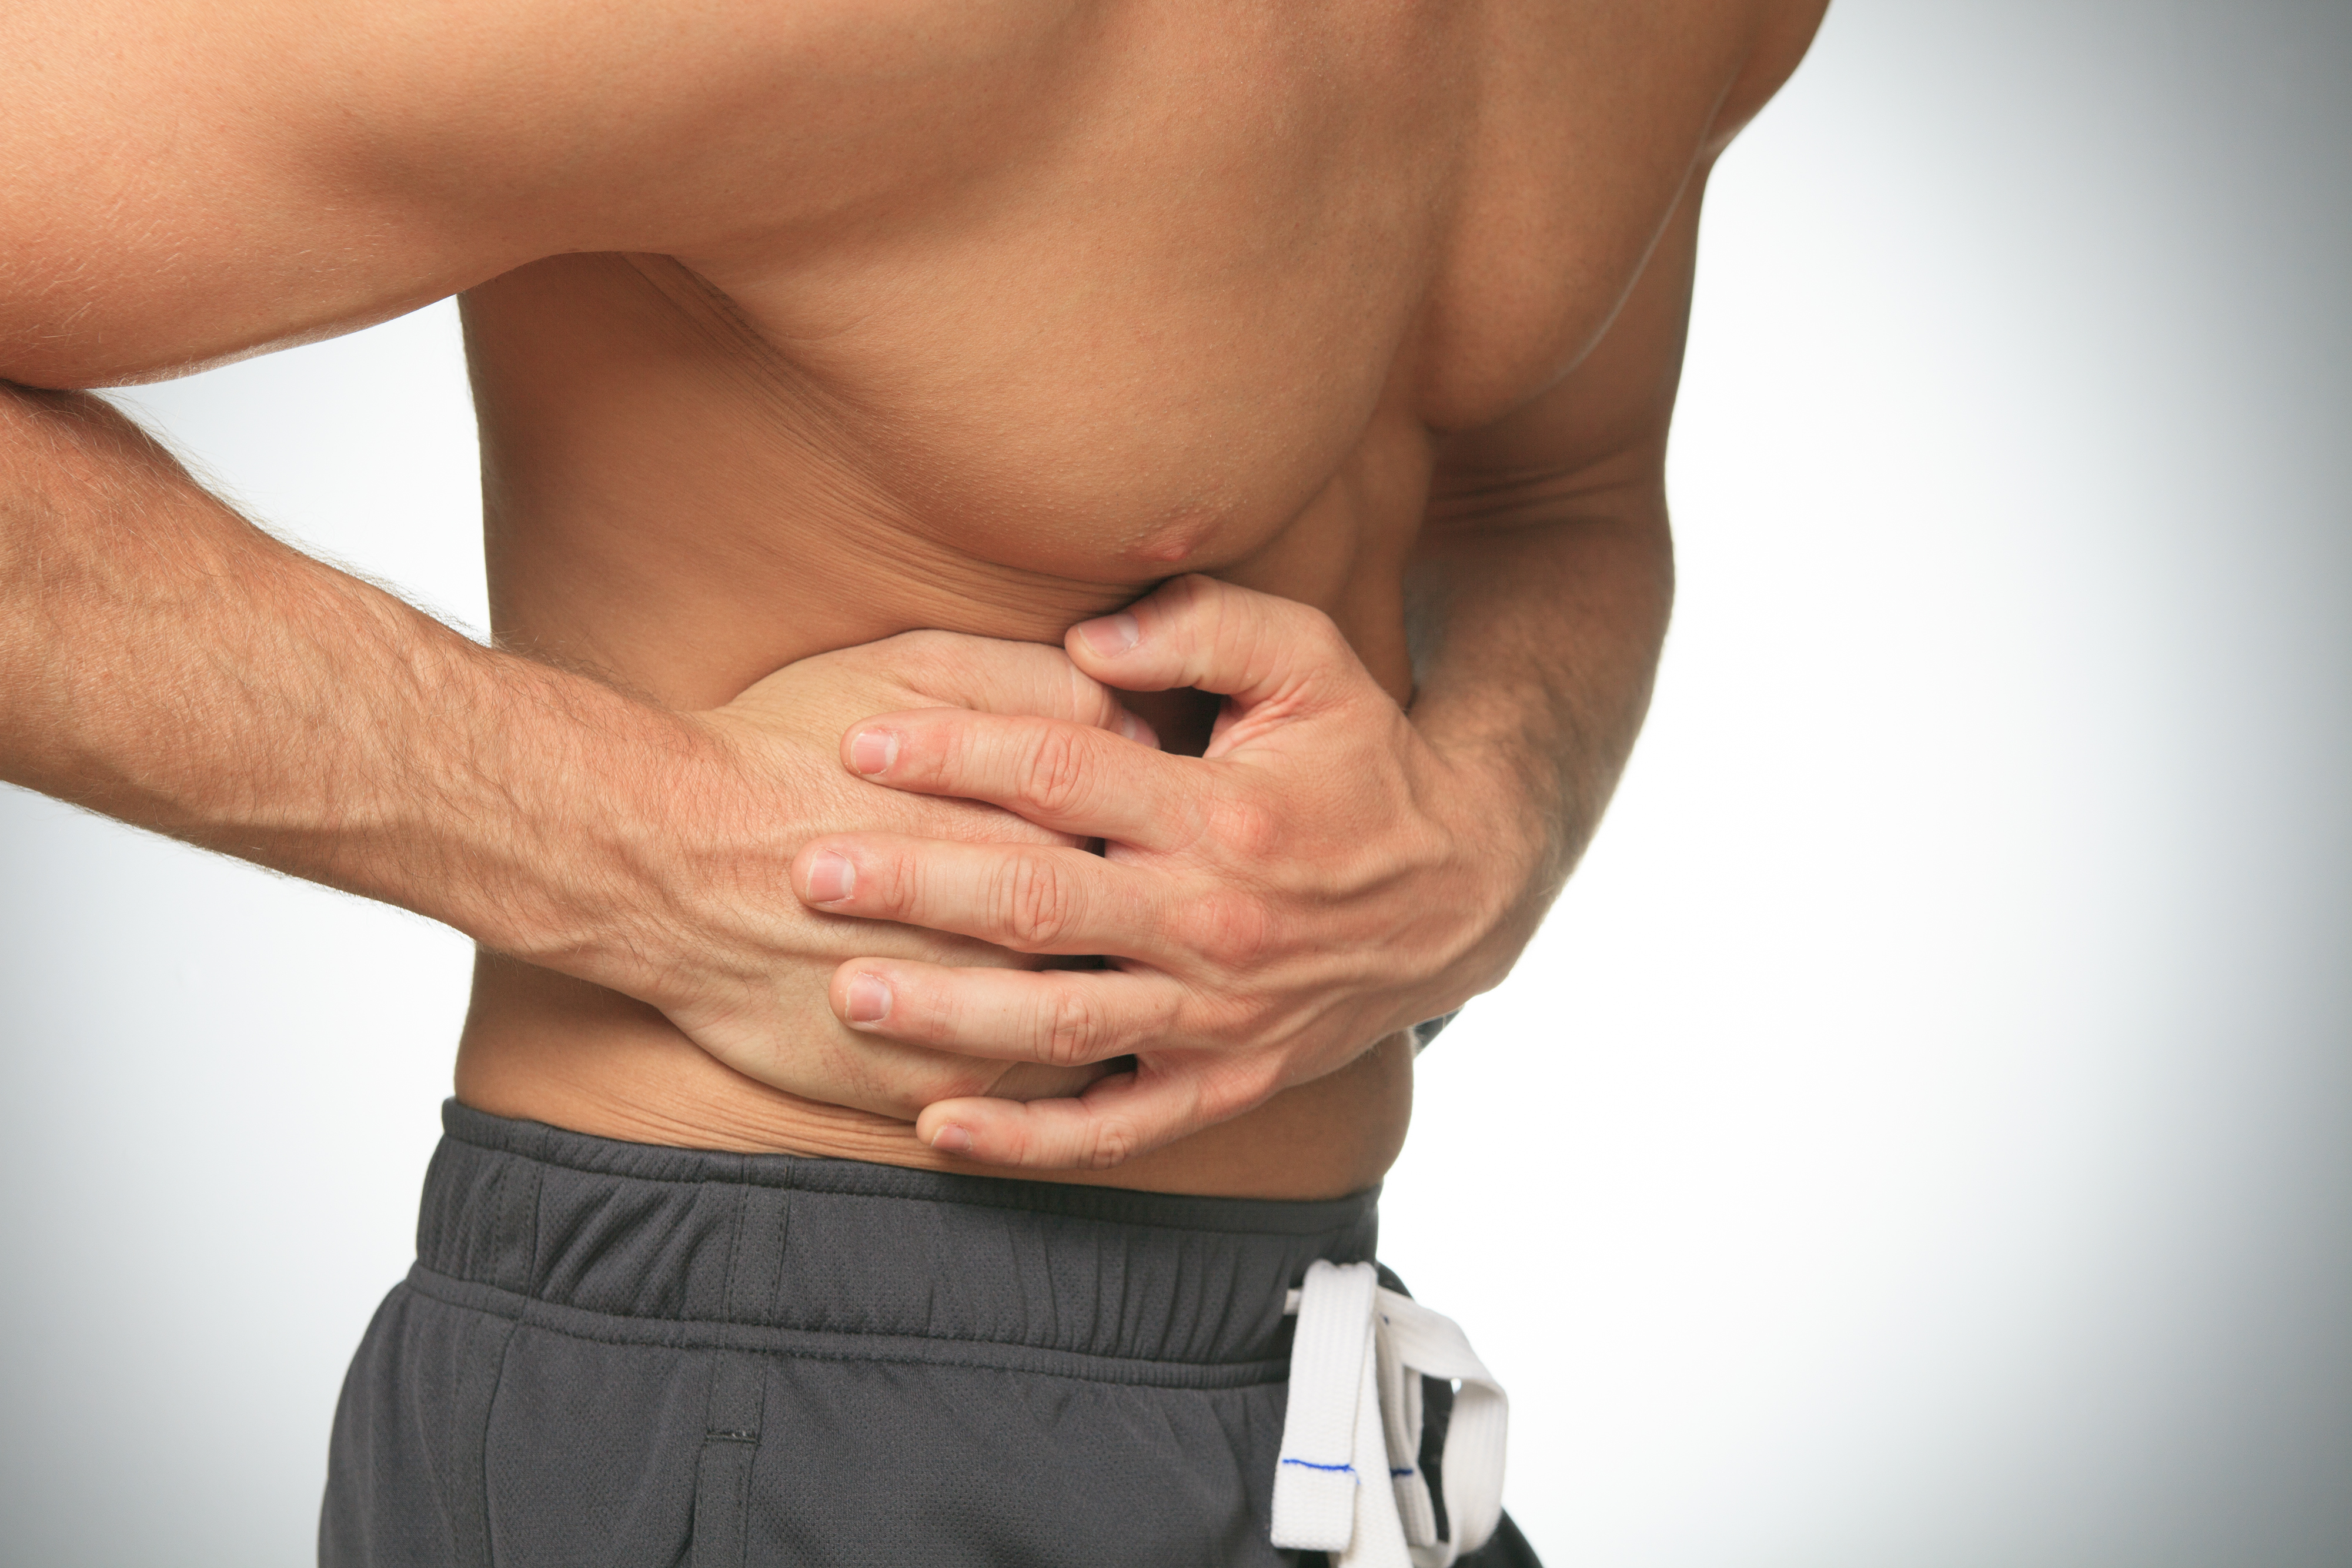 Pin on Back Pain Center